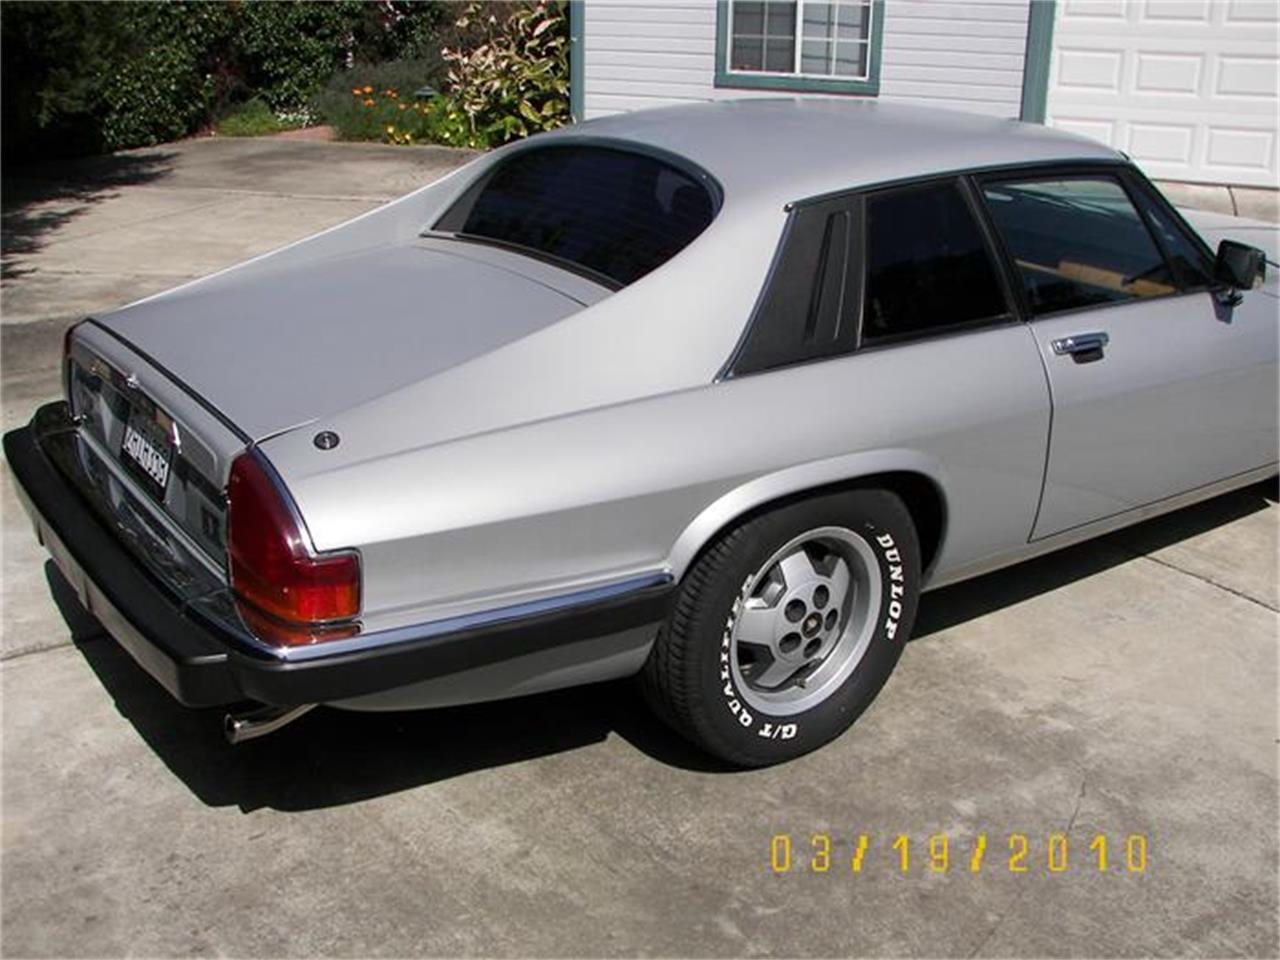 Large Picture of 1985 Jaguar XJS located in California - $7,500.00 - 2YG4